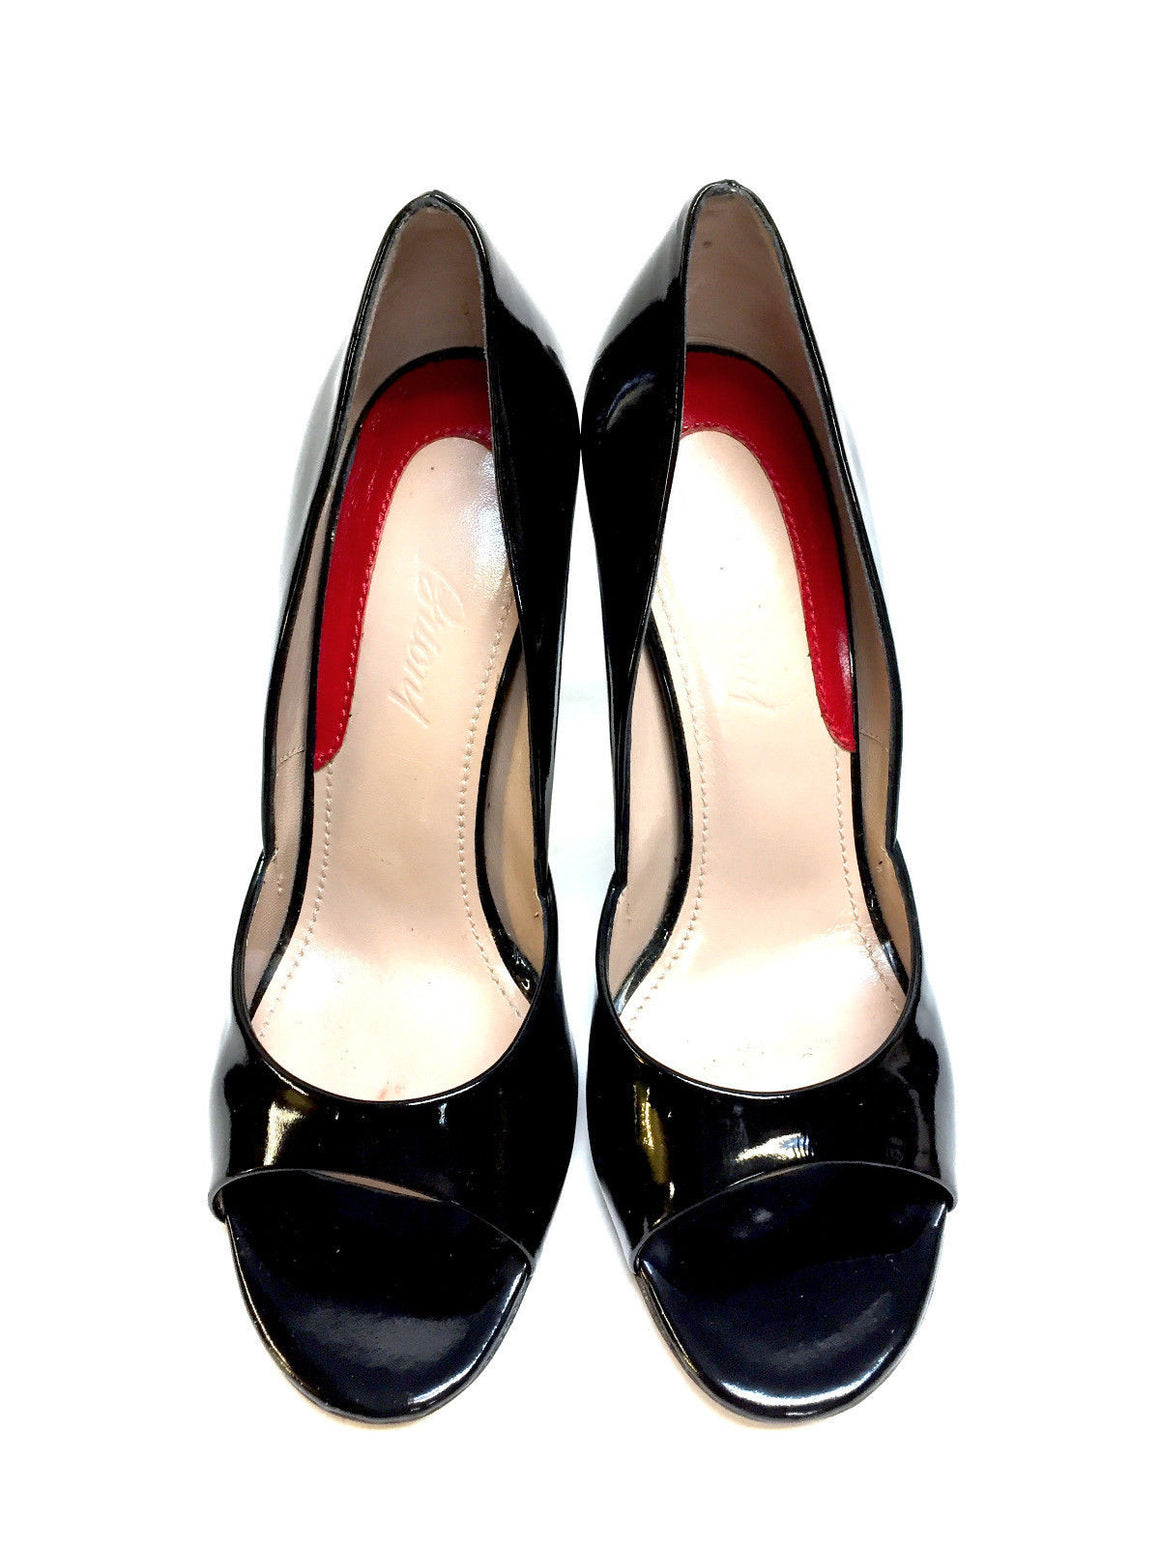 bisbiz.com BRIONI Black Patent Leather Open-Toe Hi-Heel Pumps Shoes  Size: 38.5 / 8.5 - Bis Luxury Resale